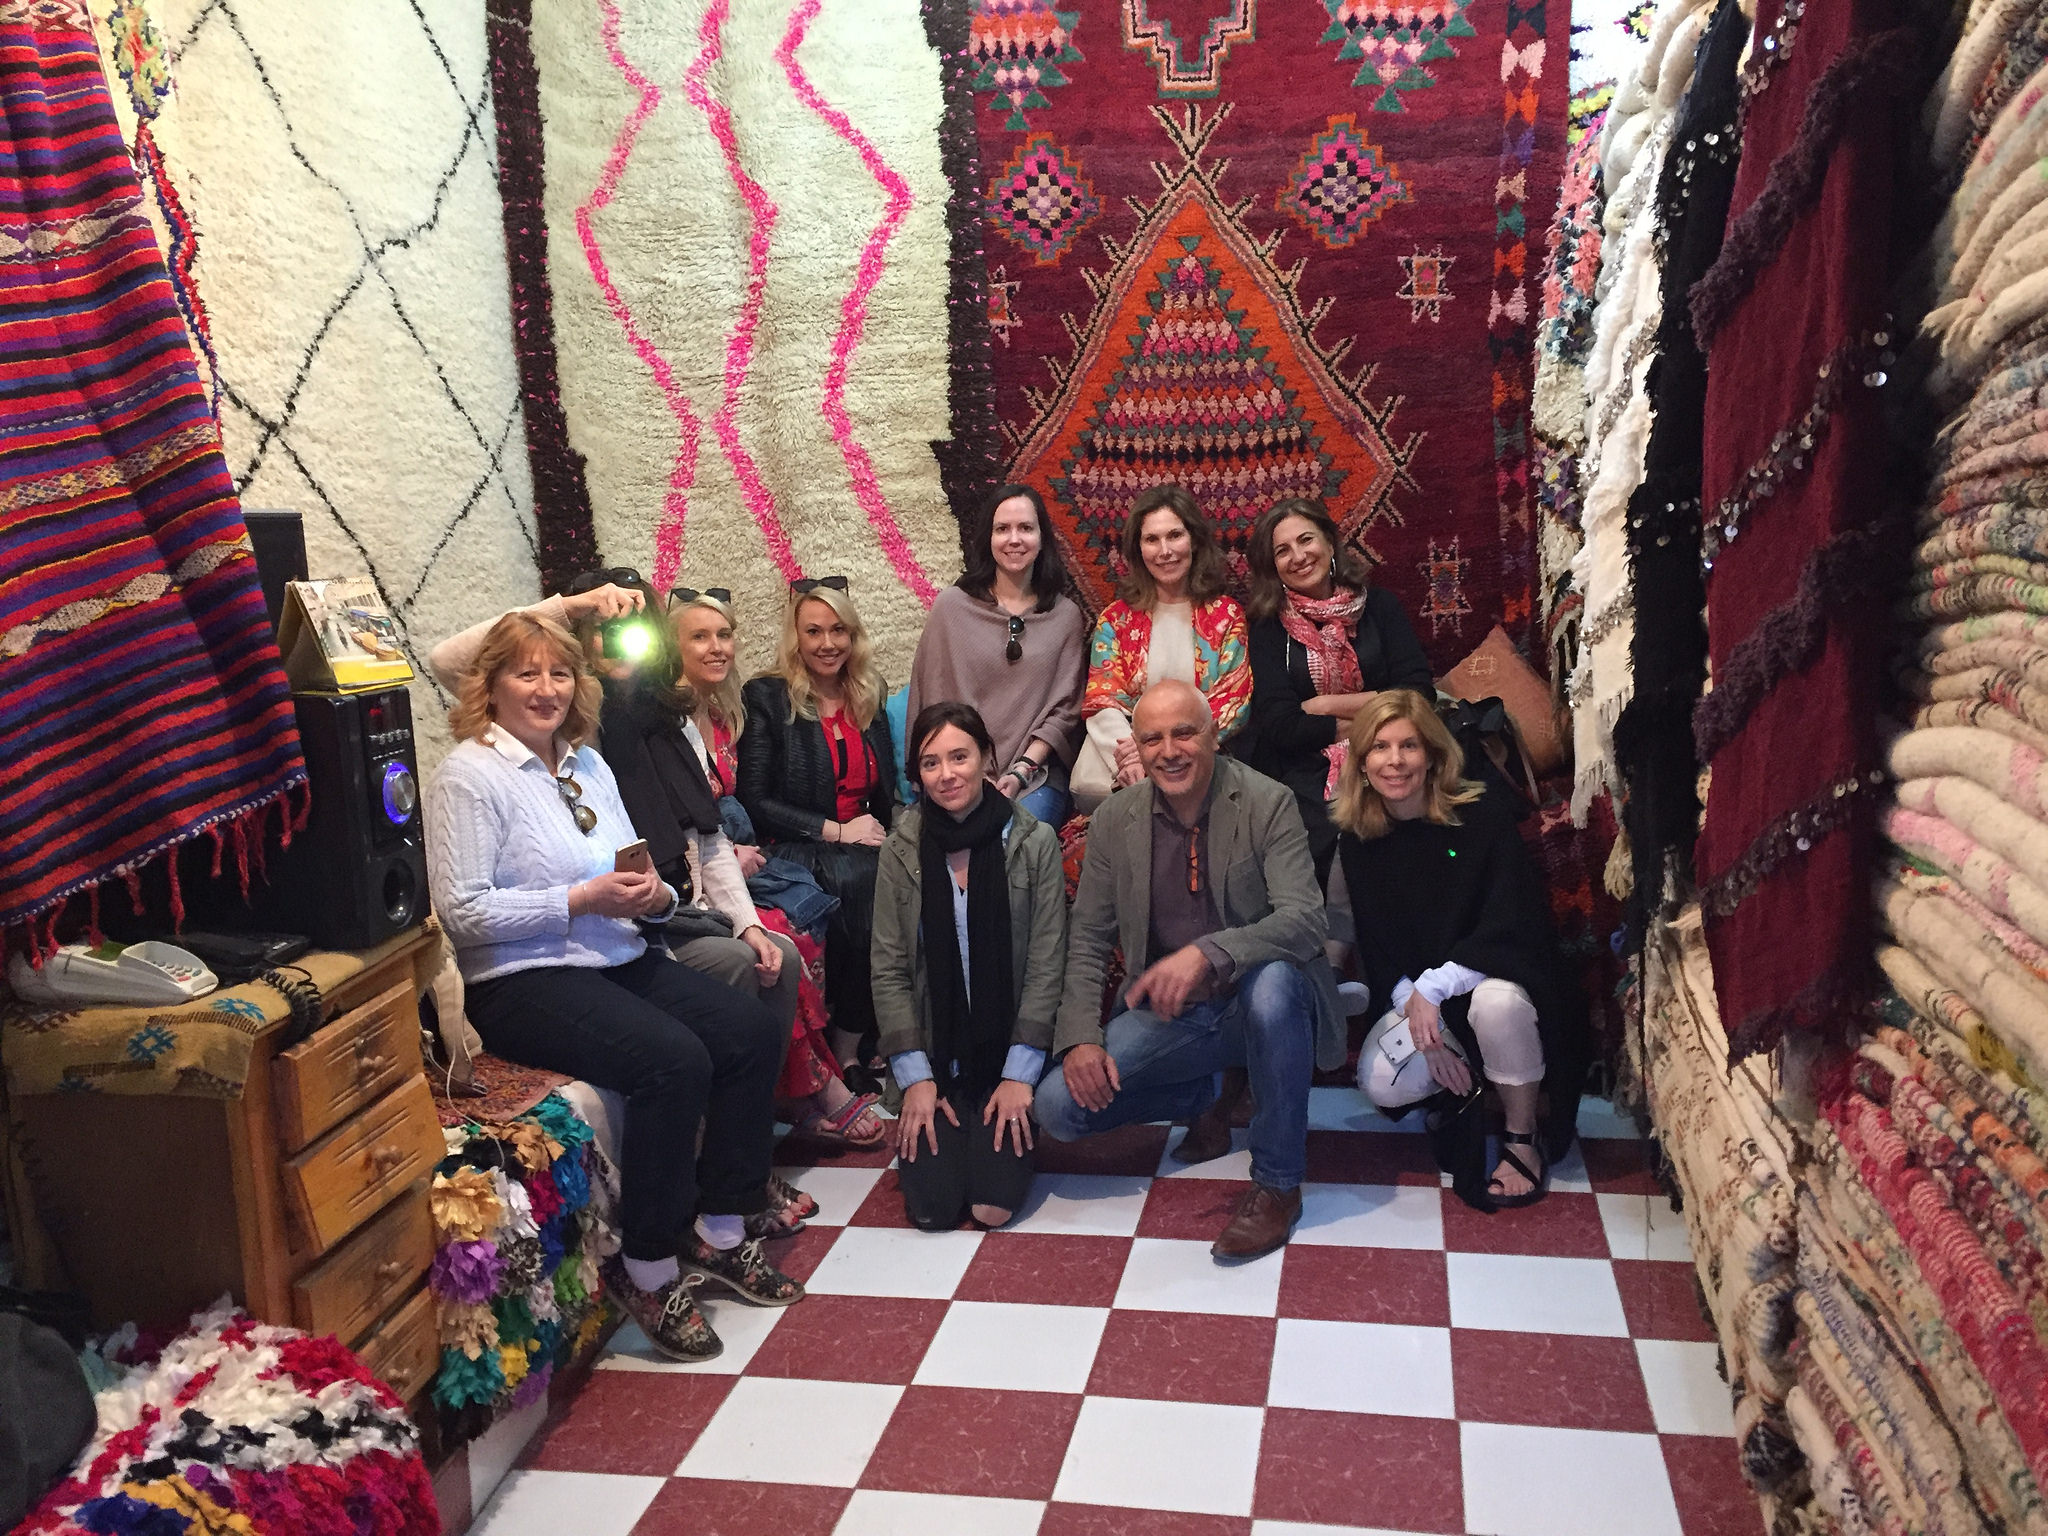 Rug Shop in the Marrakech Souks  | EAT.PRAY.MOVE Yoga Retreat | Marrakesh, Morocco